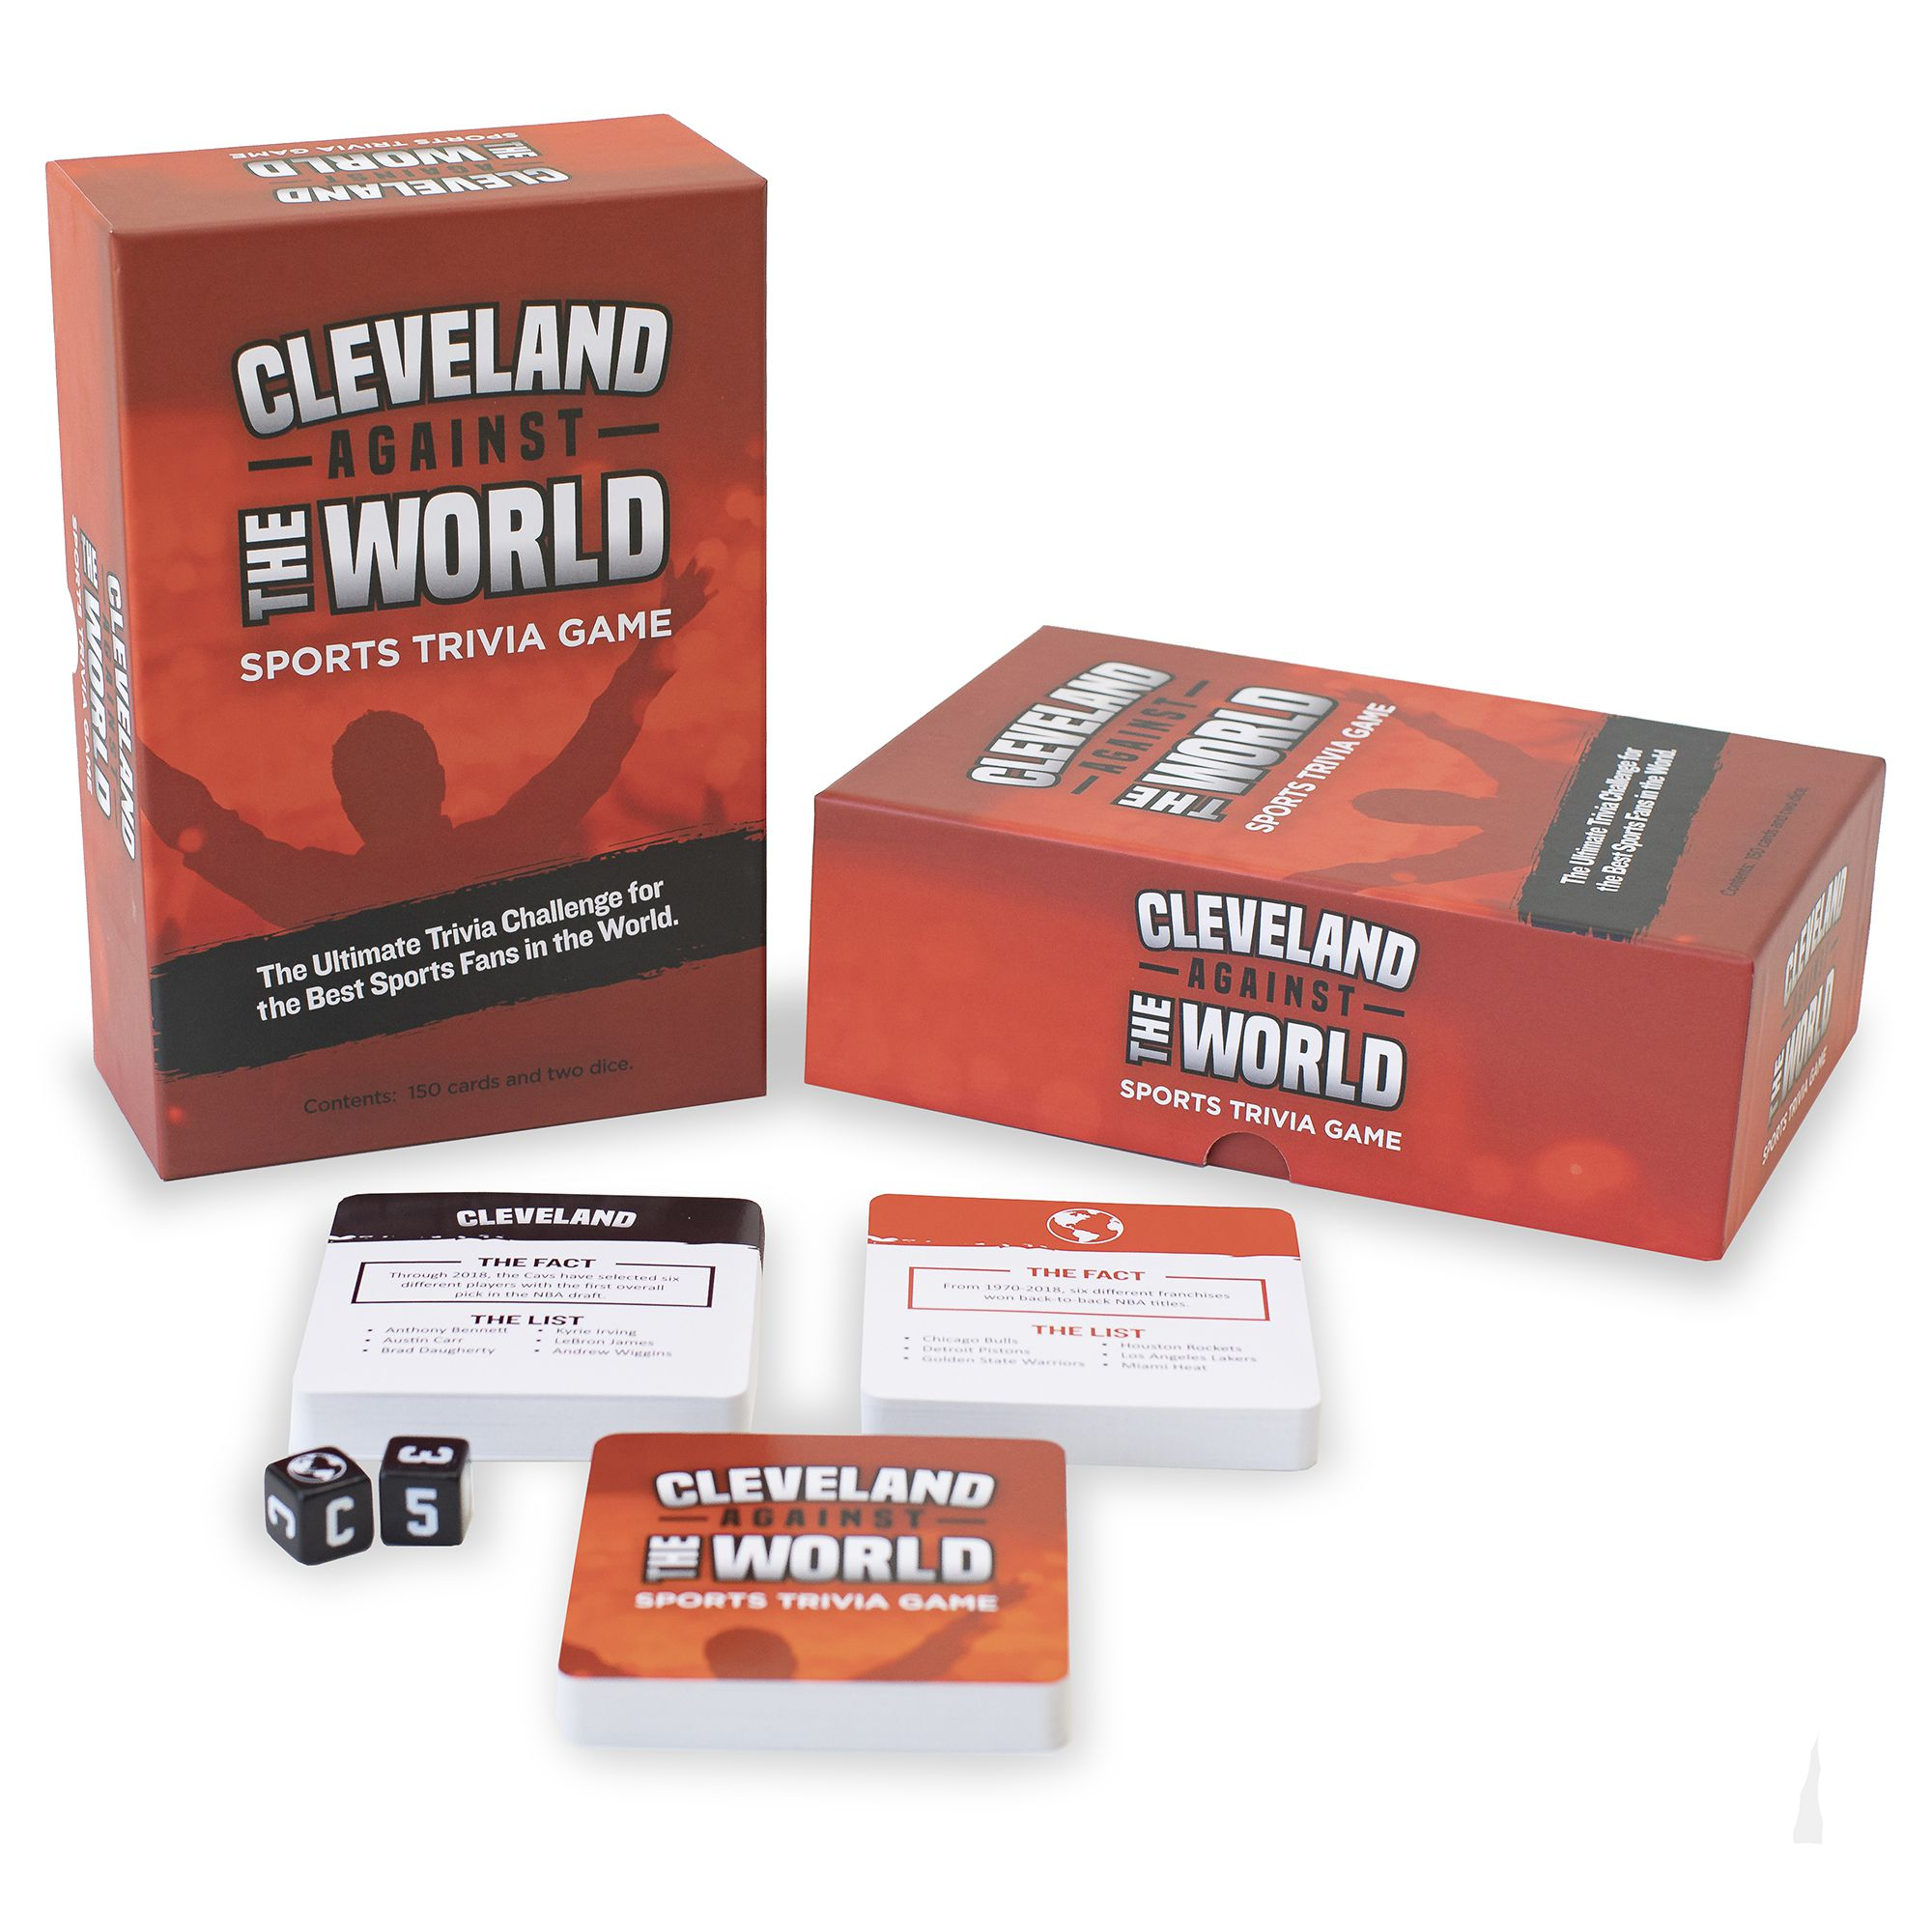 YOU GOTTA KNOW CLEVELAND SPORTS TRIVIA GAME INDIANS BROWNS CAVALIERS NEW!